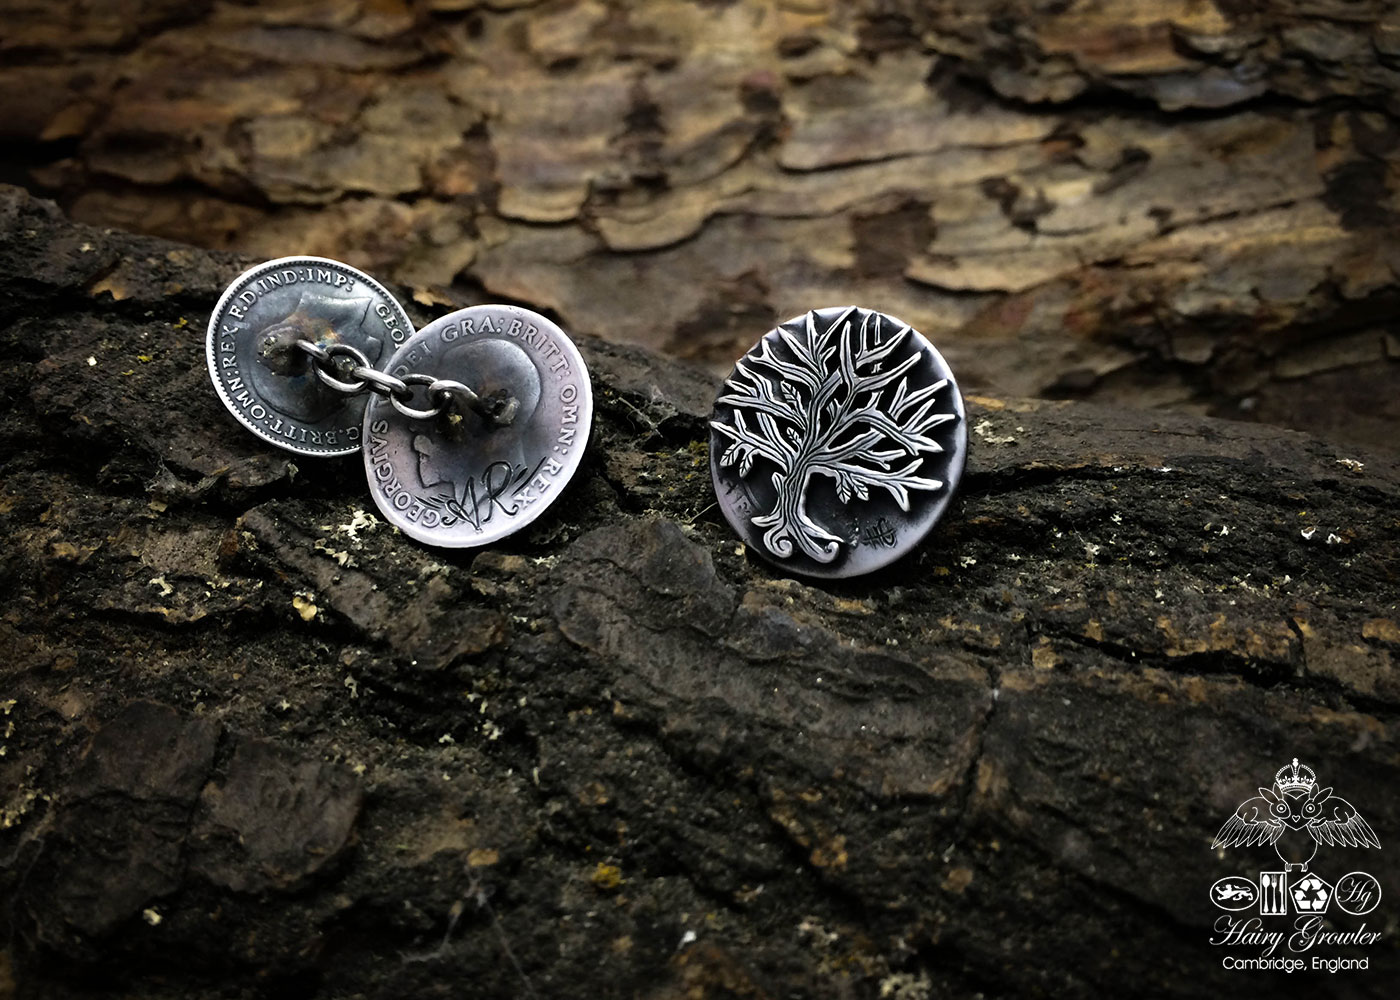 tree-of-life cufflinks handcrafted and recycled from sterling silver shillings and threepence coins